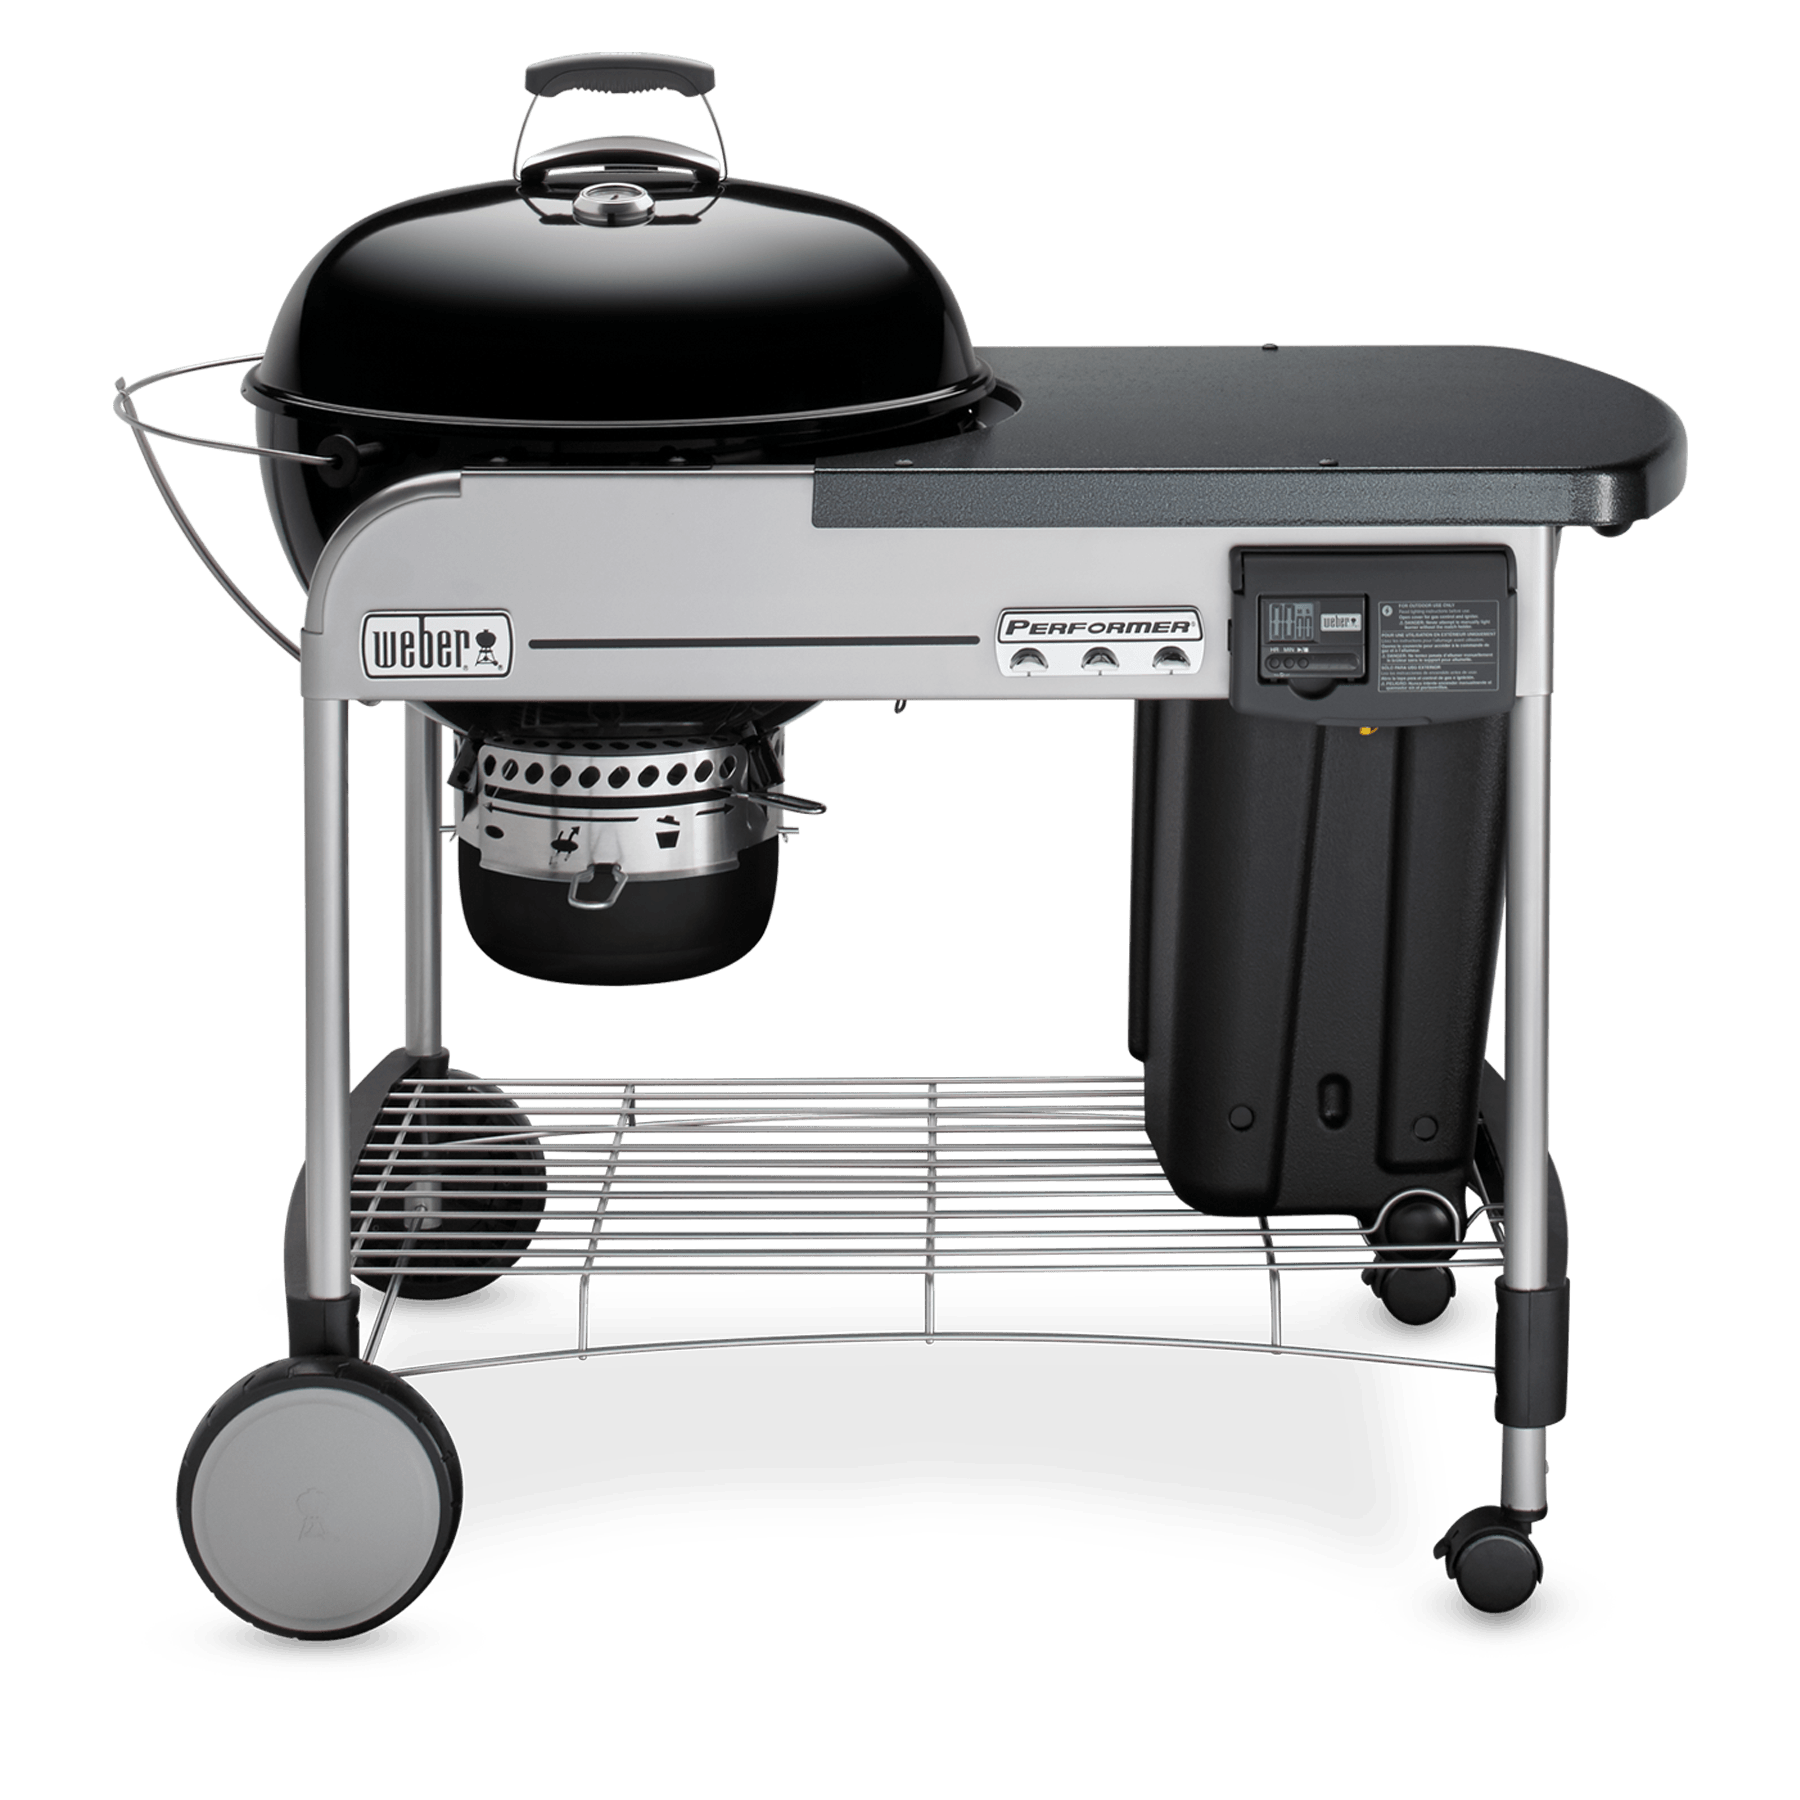 Weber Grill 57 Cm Gbs Performer Deluxe Gbs Kulgrill 57 Cm Performer Serien